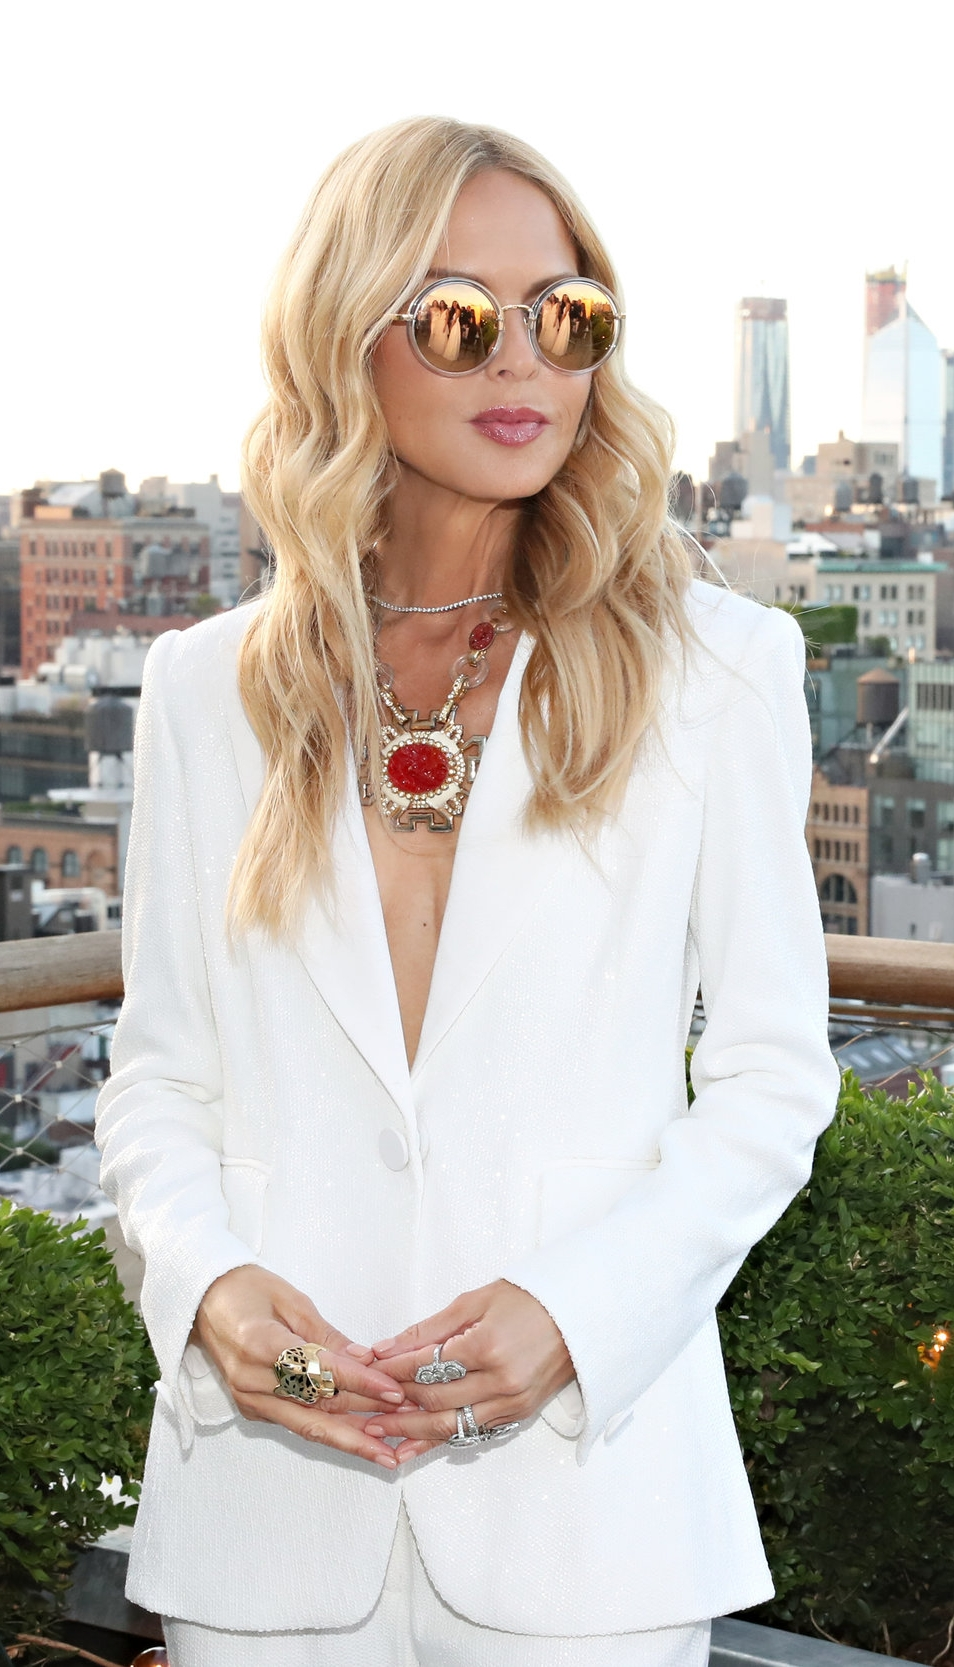 - Last night, Rachel Zoe, Designer & CEO, and Brides welcomed guests including brides-to-be Katie Stevens (Freeform's The Bold Type) and Rachel Feinstein (HBO's Crashing), plus Mary Orton (Memorandum), designer Danielle Frankel, wedding industry notables including planner Jung Lee, and owner of famed NYC luxury bridal atelier Mark Ingram, and more for an evening of cocktails and hors d'oeuvres on a private terrace at The Public Hotel. The evening also included a special viewing of her 2019 bridal collection. Brides Executive Director, Lisa Gooder, toasted Rachel and welcomed her into the bridal community before Zoe gave remarks on some of the collection's looks. Zoe also lent her expertise as she chatted with  some of the engaged attendees including Katie Stevens and Rachel Feinstein for each of their upcoming weddings. Read more about Rachel's new collection and inspiration here!